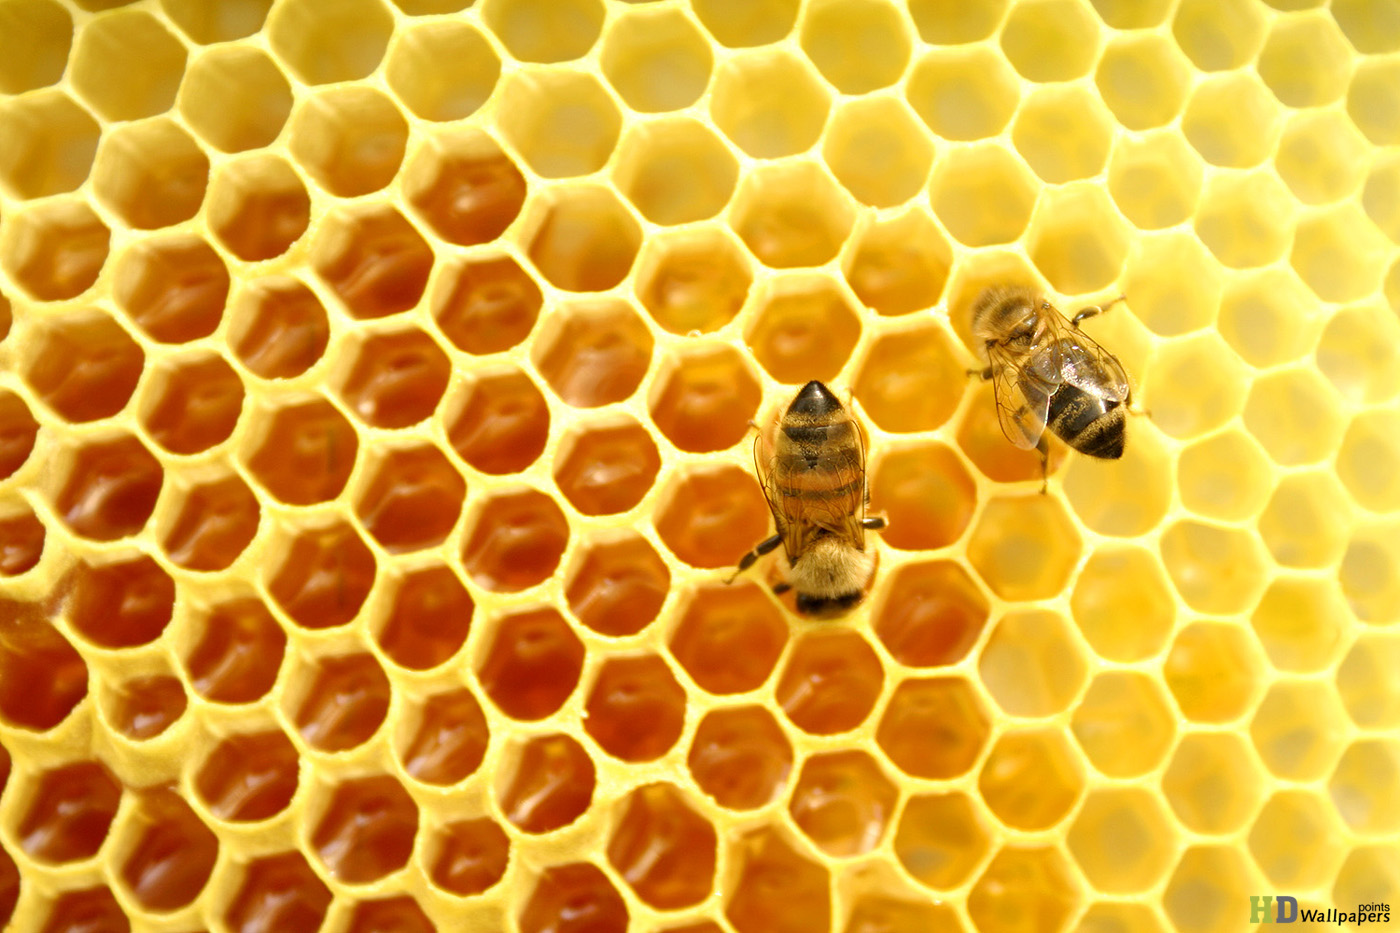 Visit Our Apiary!